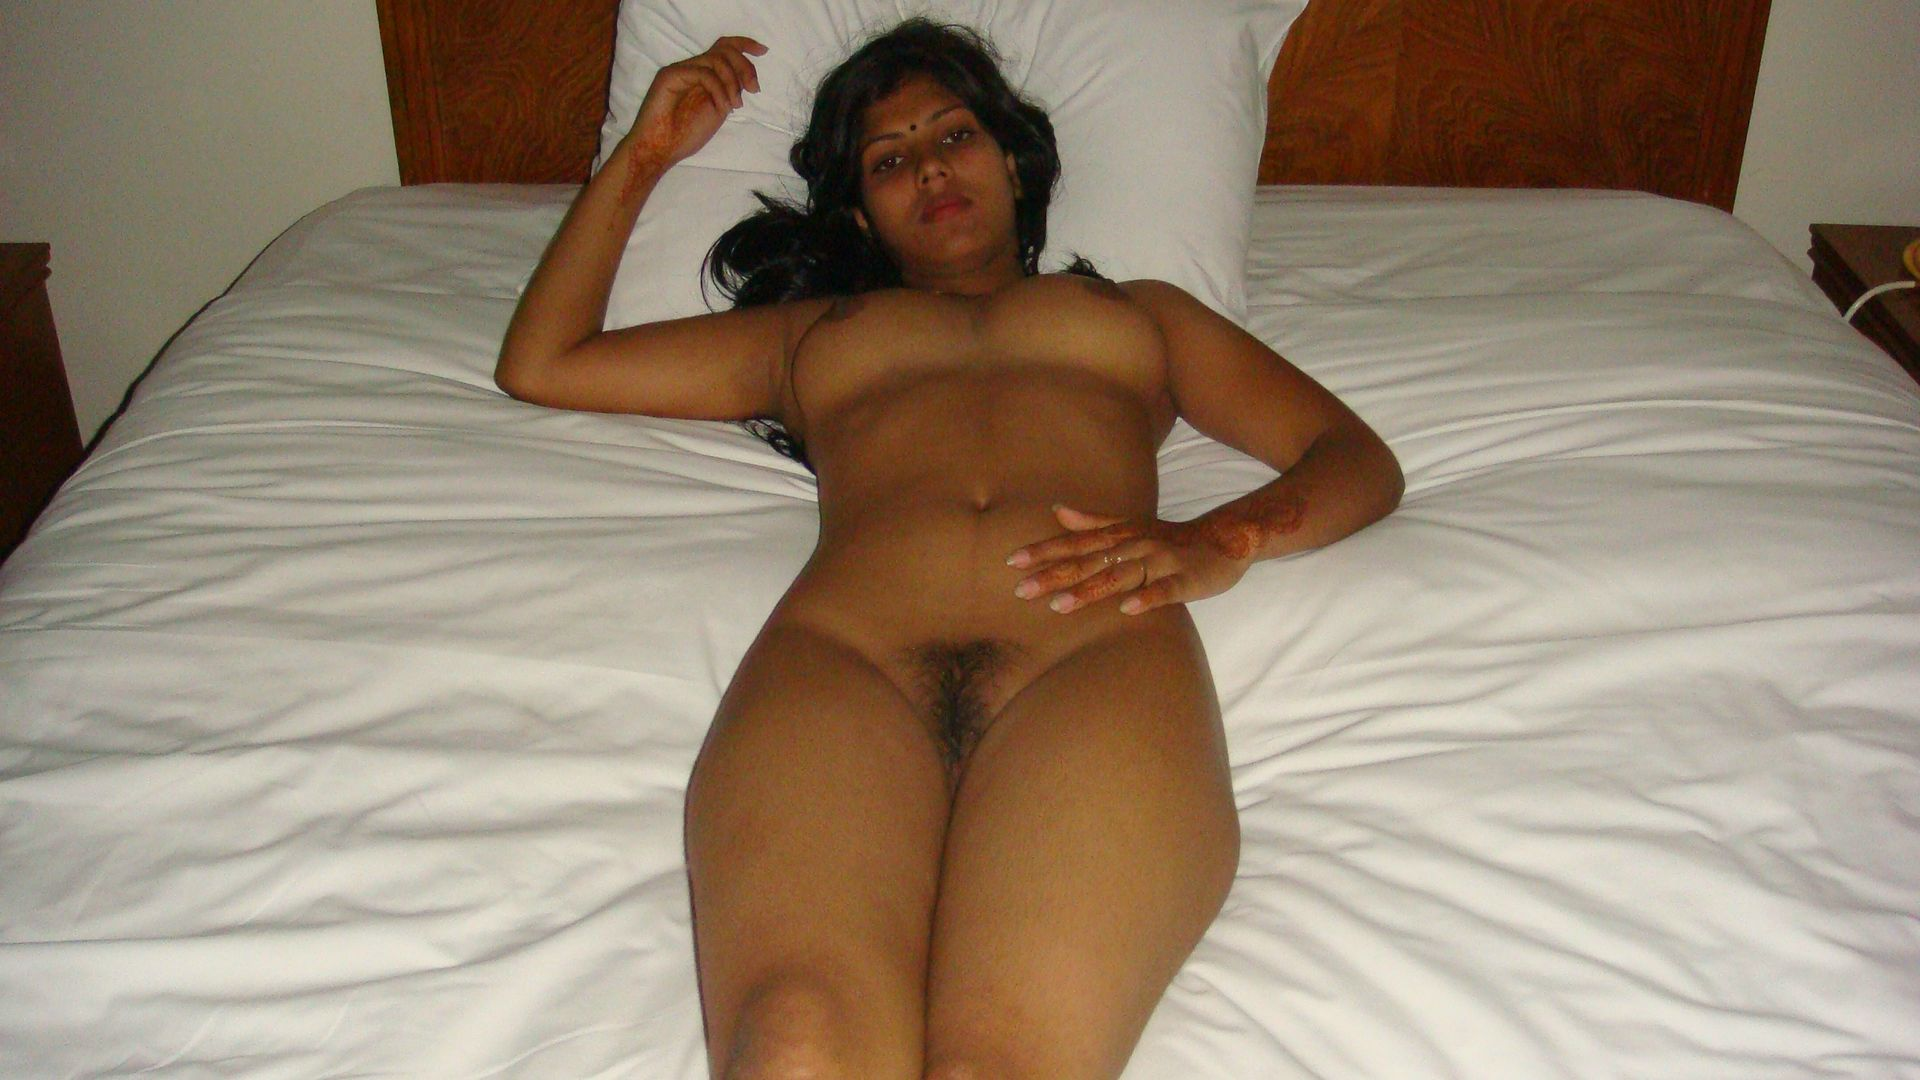 friends-nude-indian-girlporn-cartoon-sex-pics